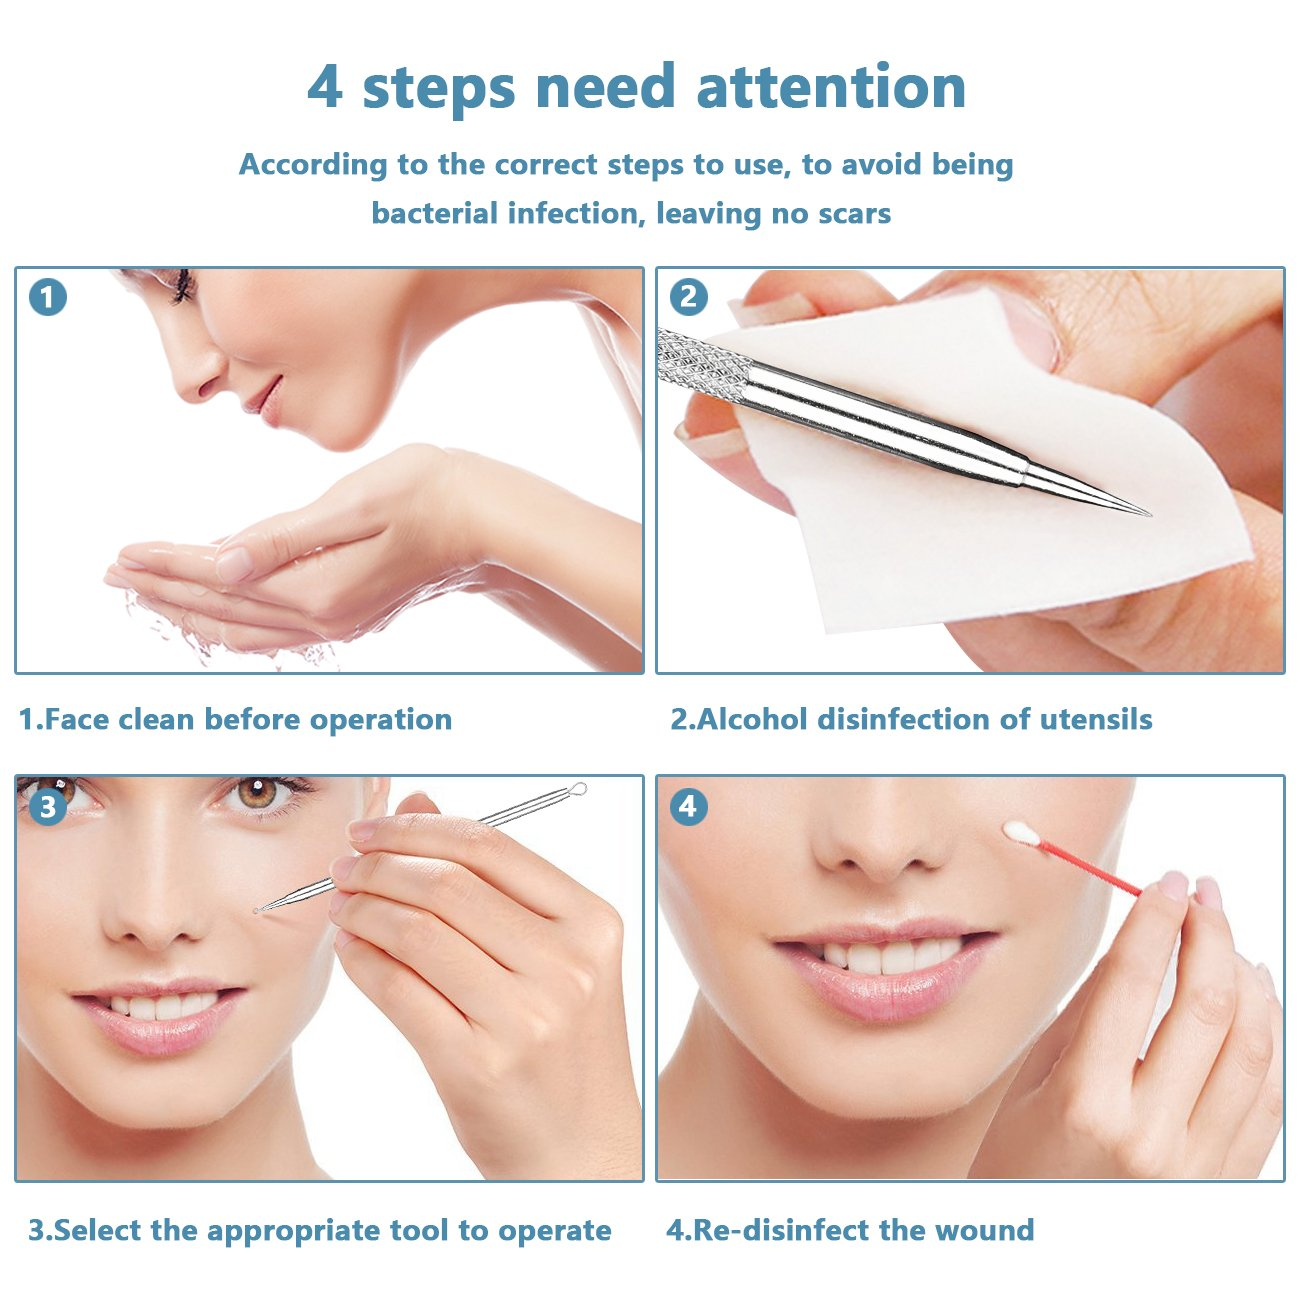 Professional Blackhead & Splinter Remover Tools Easily Cure Pimples Whiteheads Comedones Acne Zit Ingrown Hairs and Facial Impurities Surgical Stainless Steel with Alcohol Prep Pad